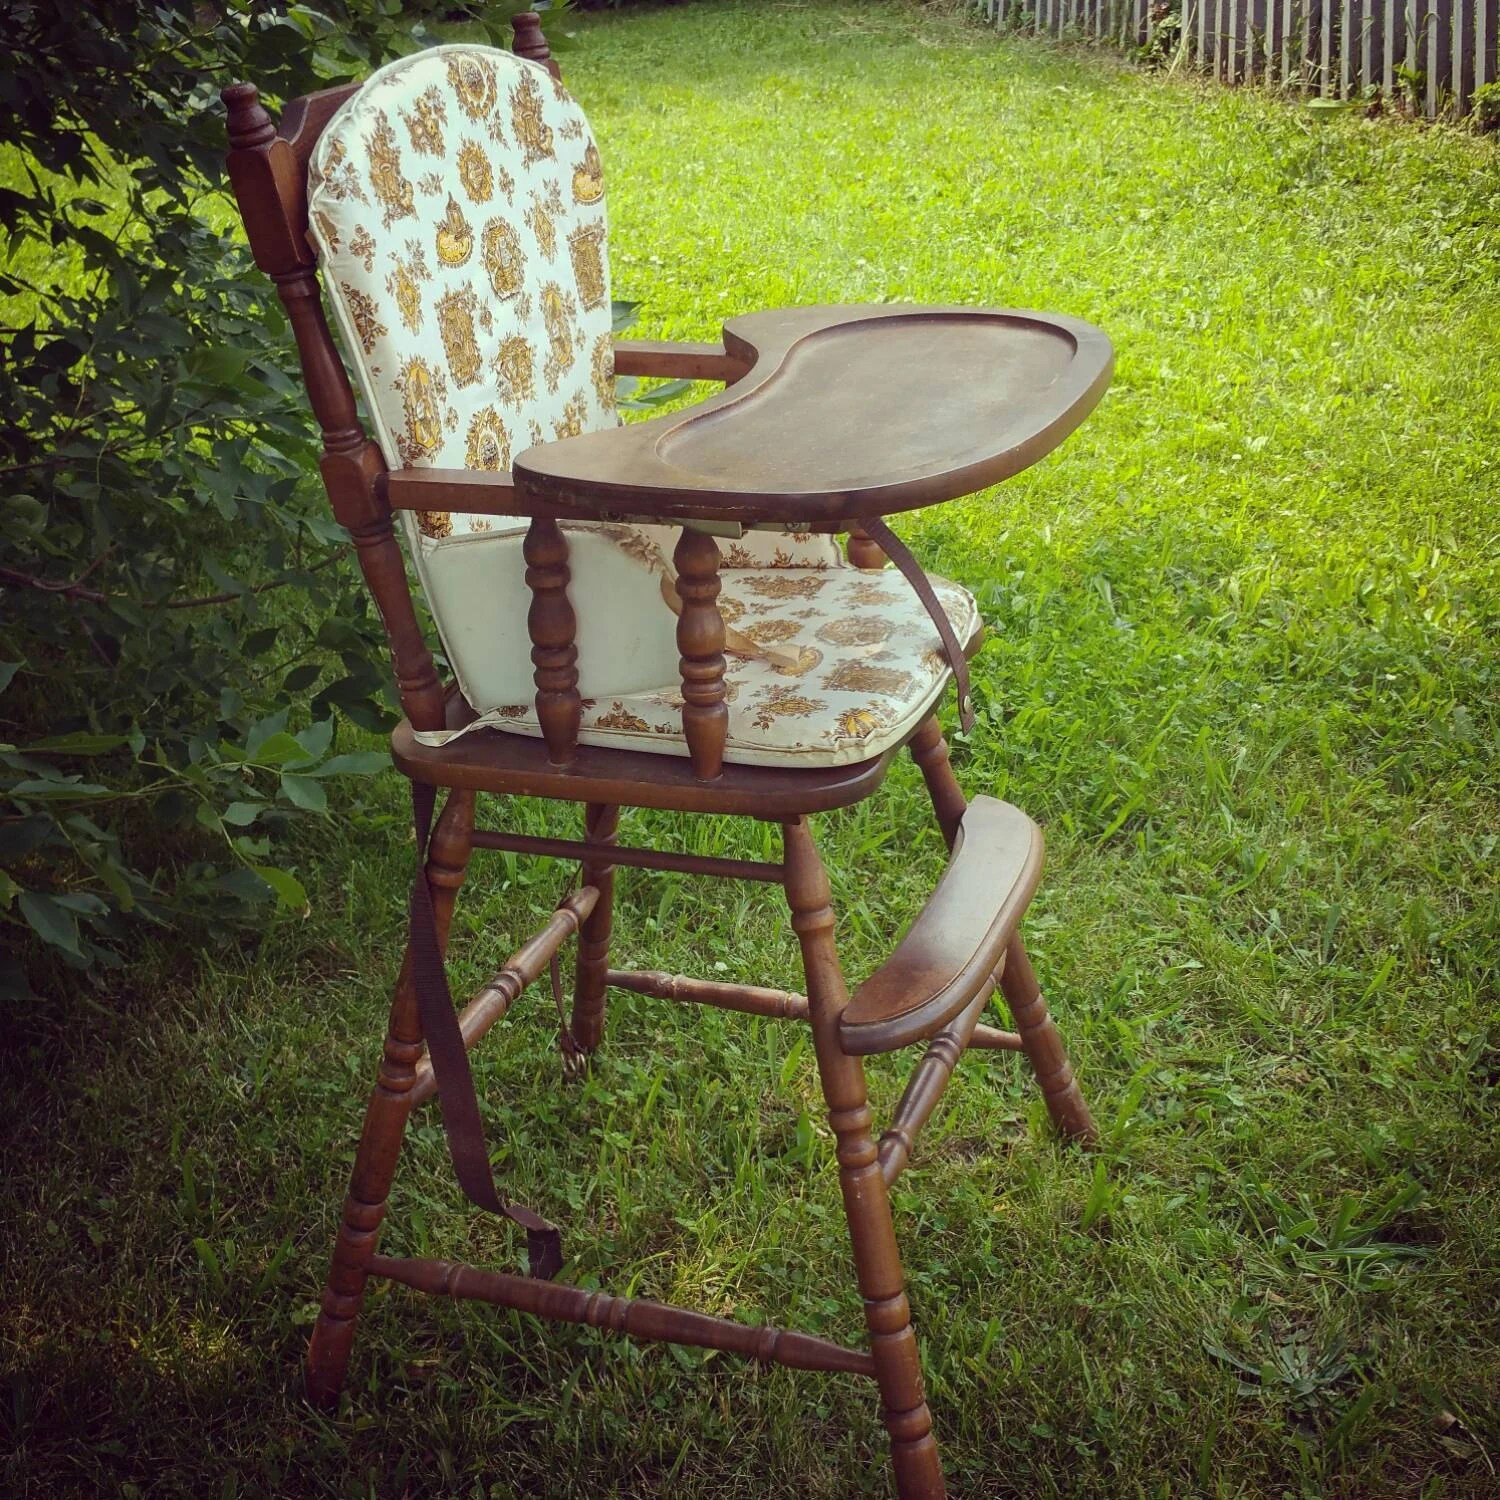 Vintage wooden baby high chair with original plastic cover ...